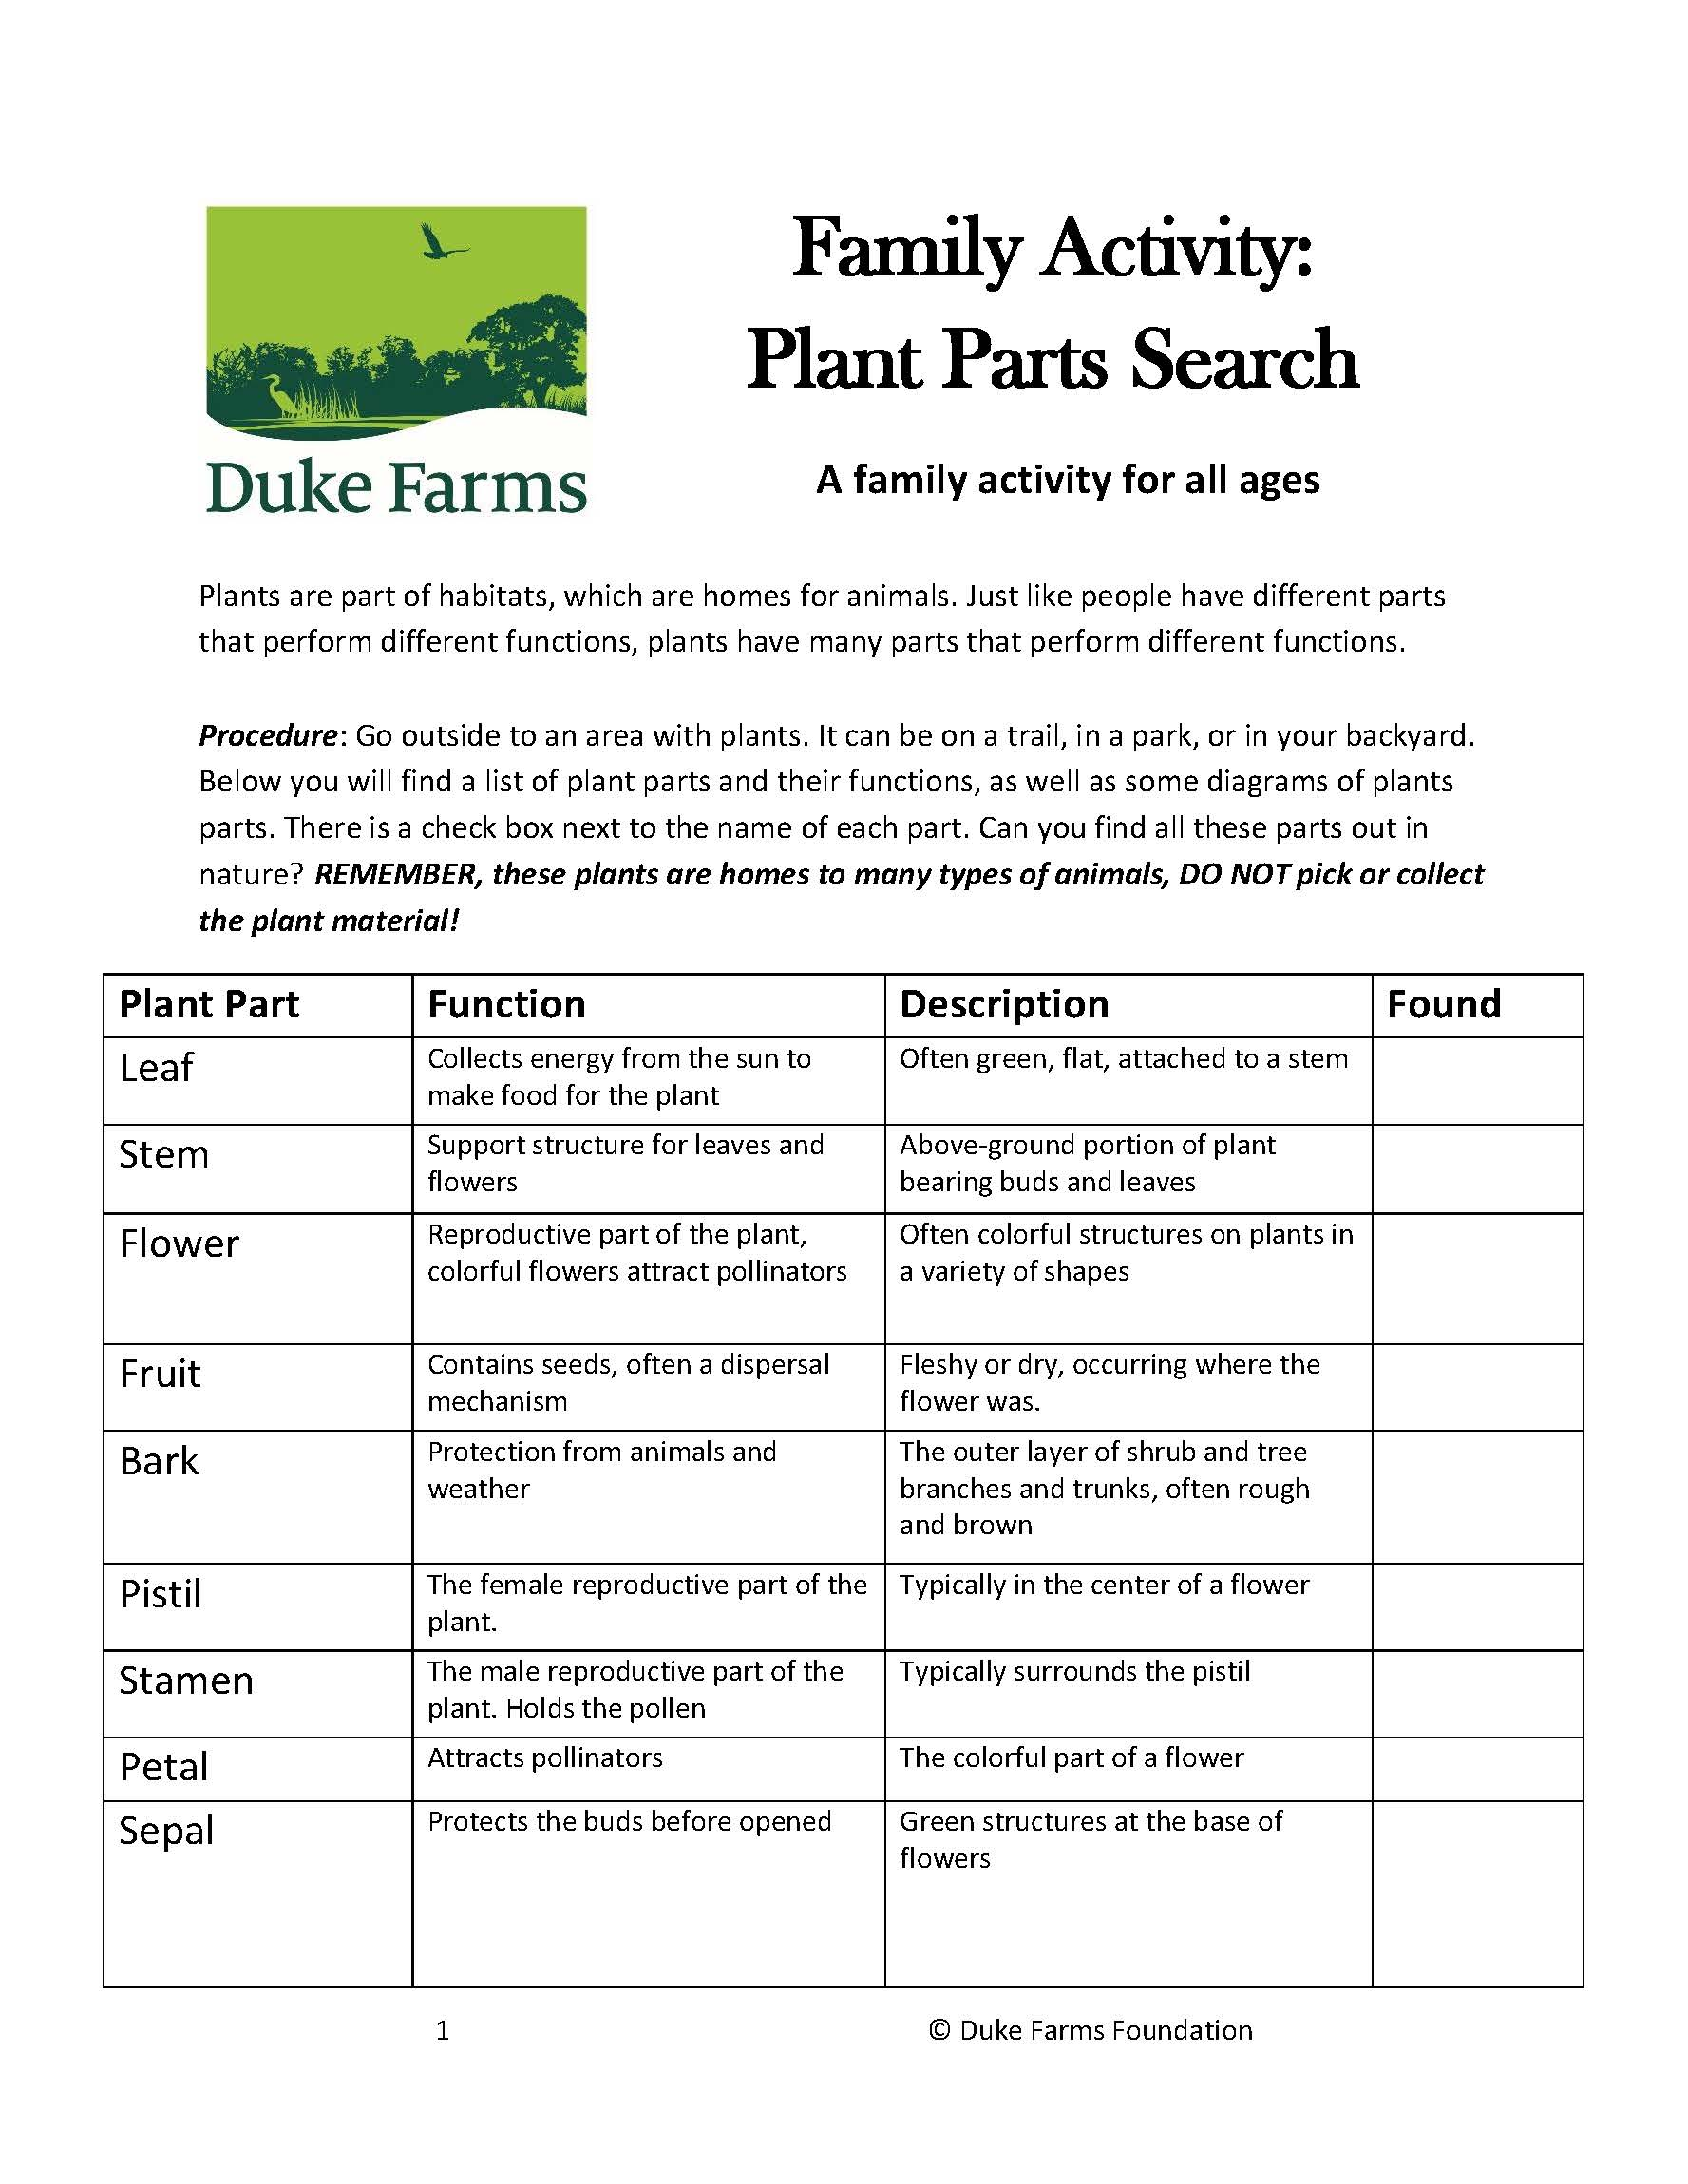 Page one of plant parts search activity